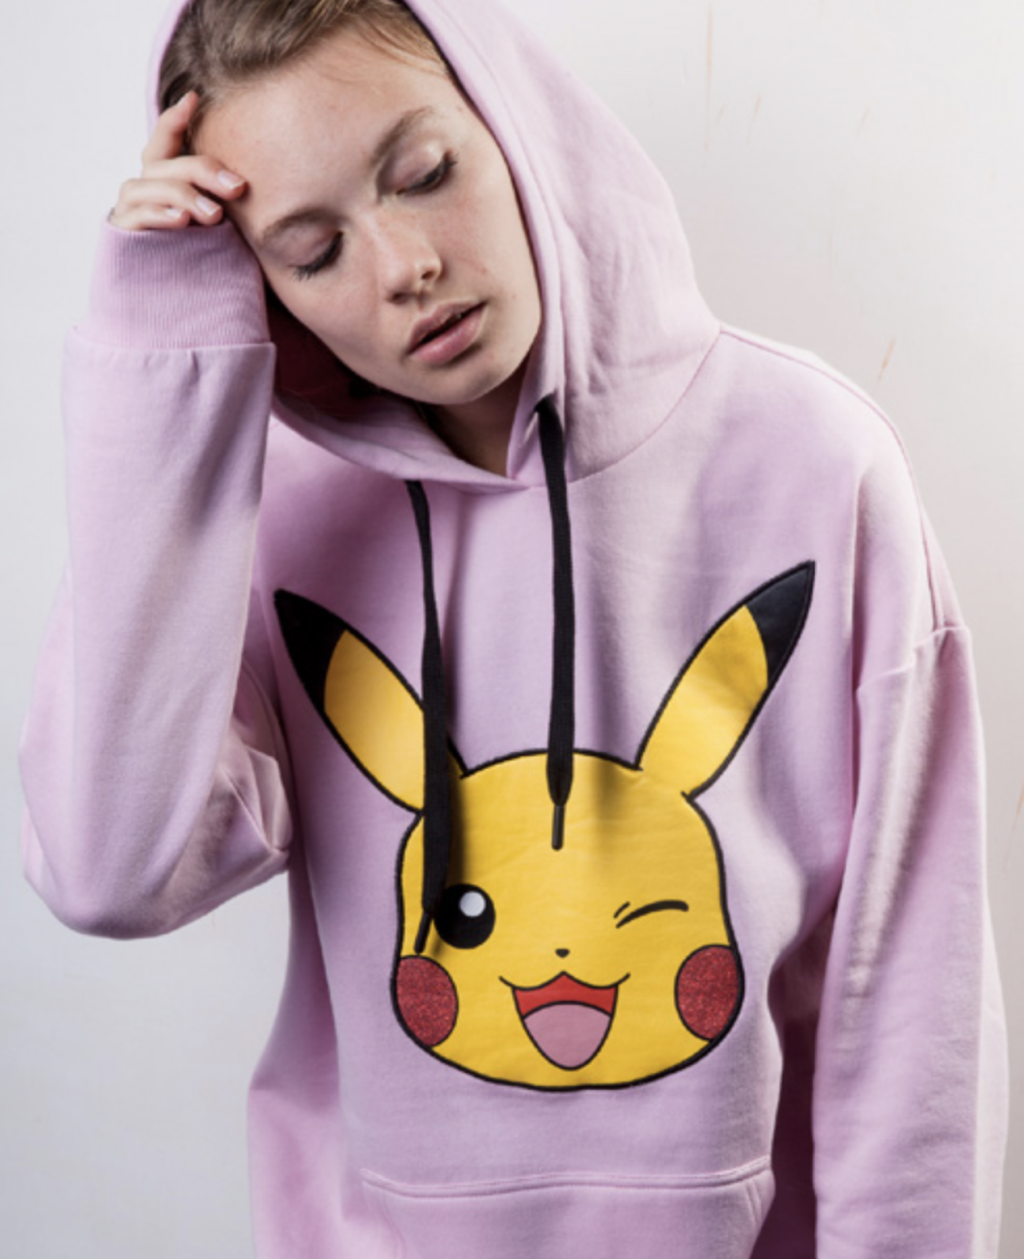 POKEMON - Women's Sweatshirt - Pikachu (S)